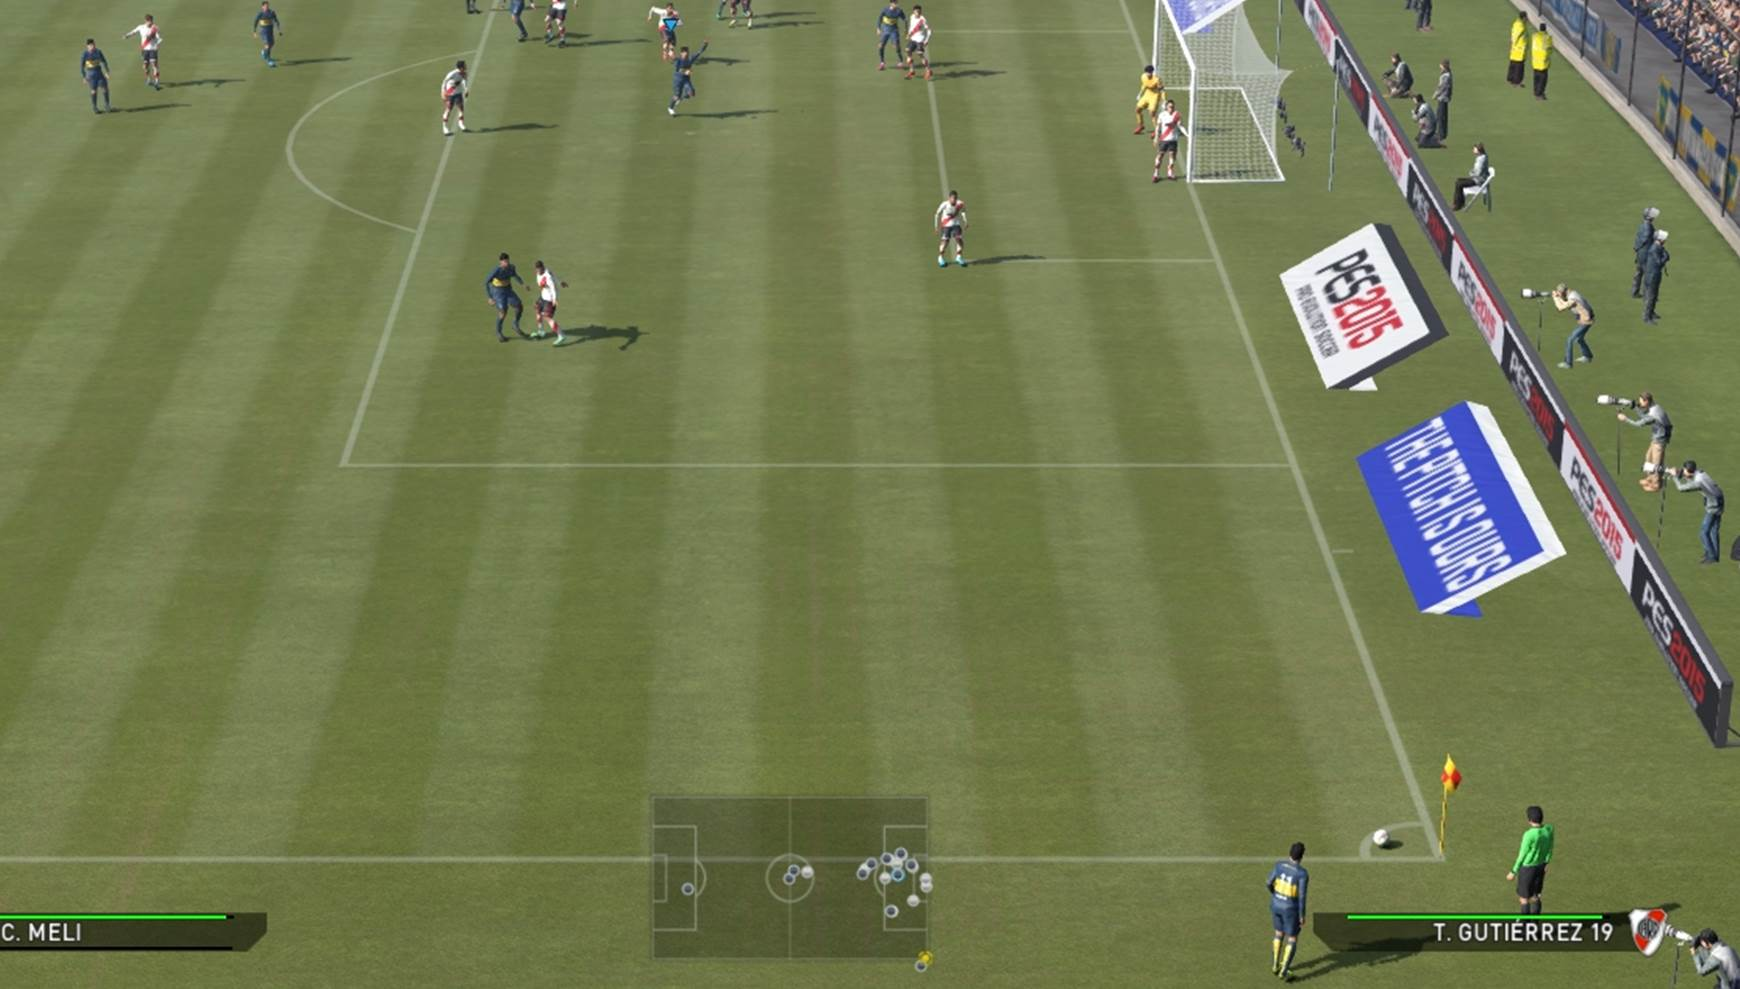 Unmarked player running towards the center of the box